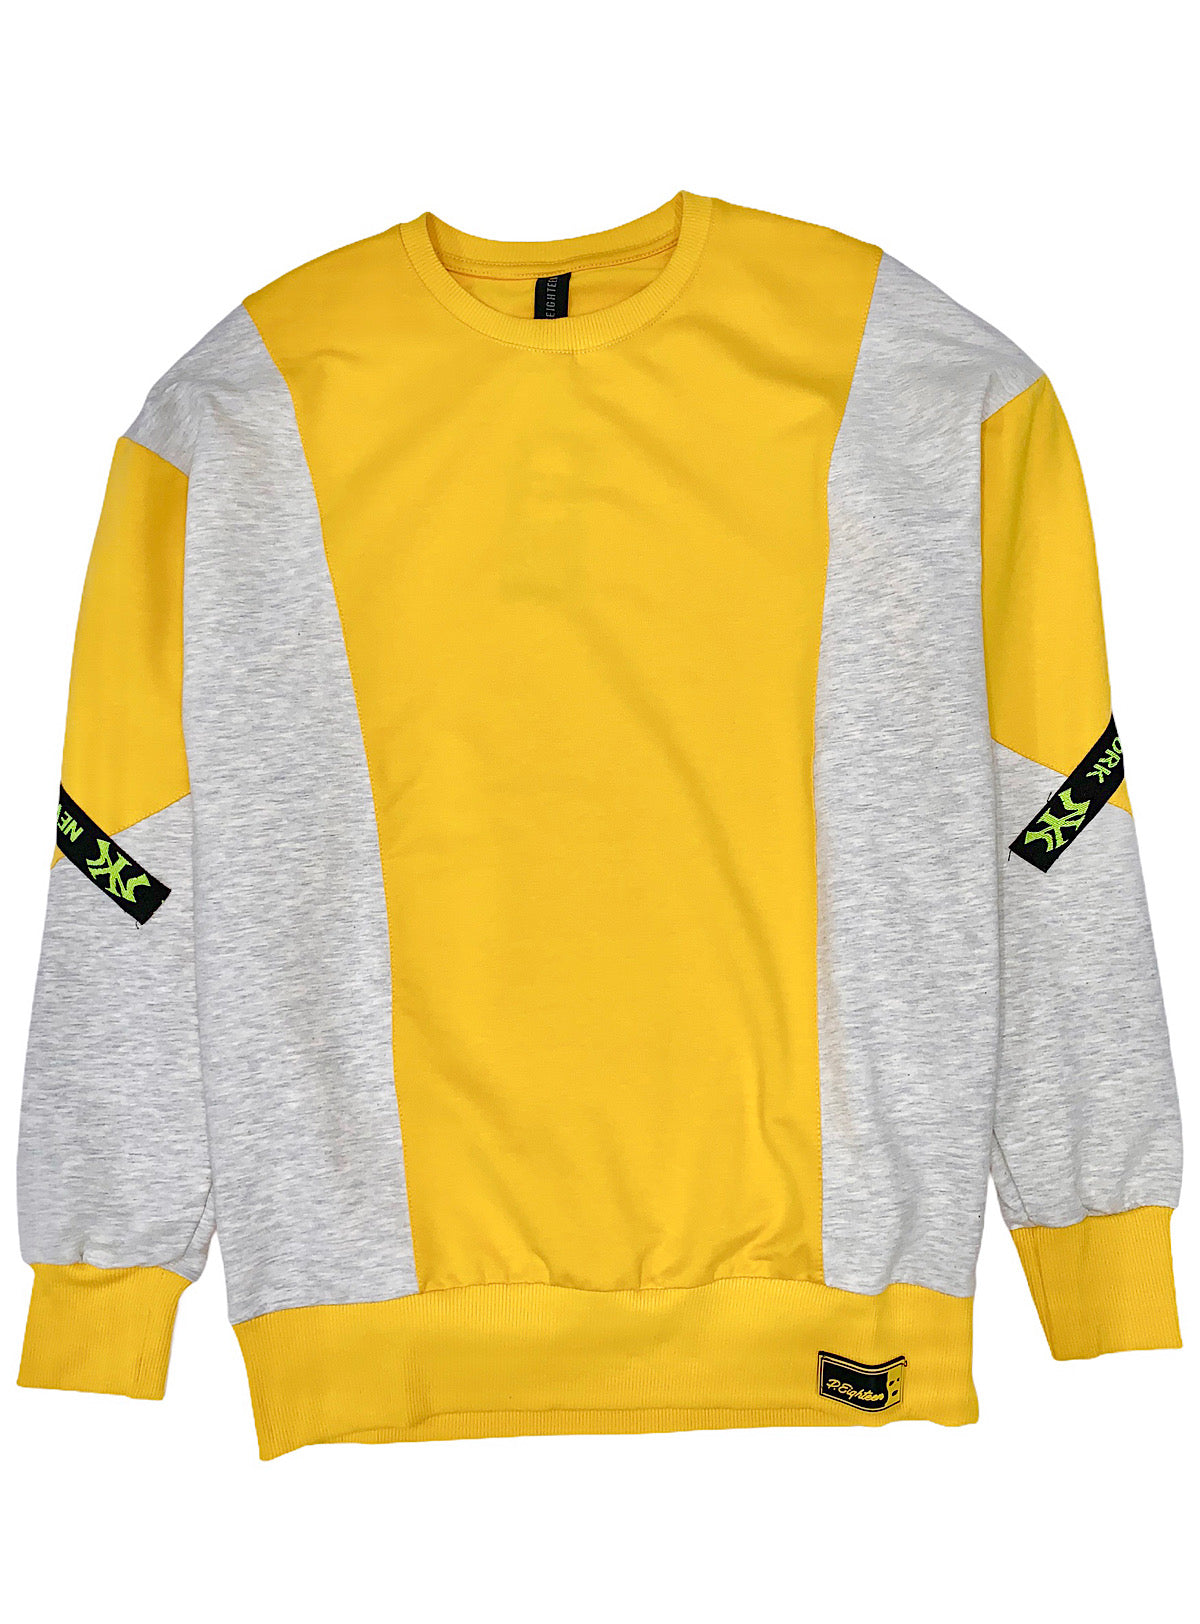 Buyer's Choise Sweatshirt - New York - Yellow And Grey - ST-6503